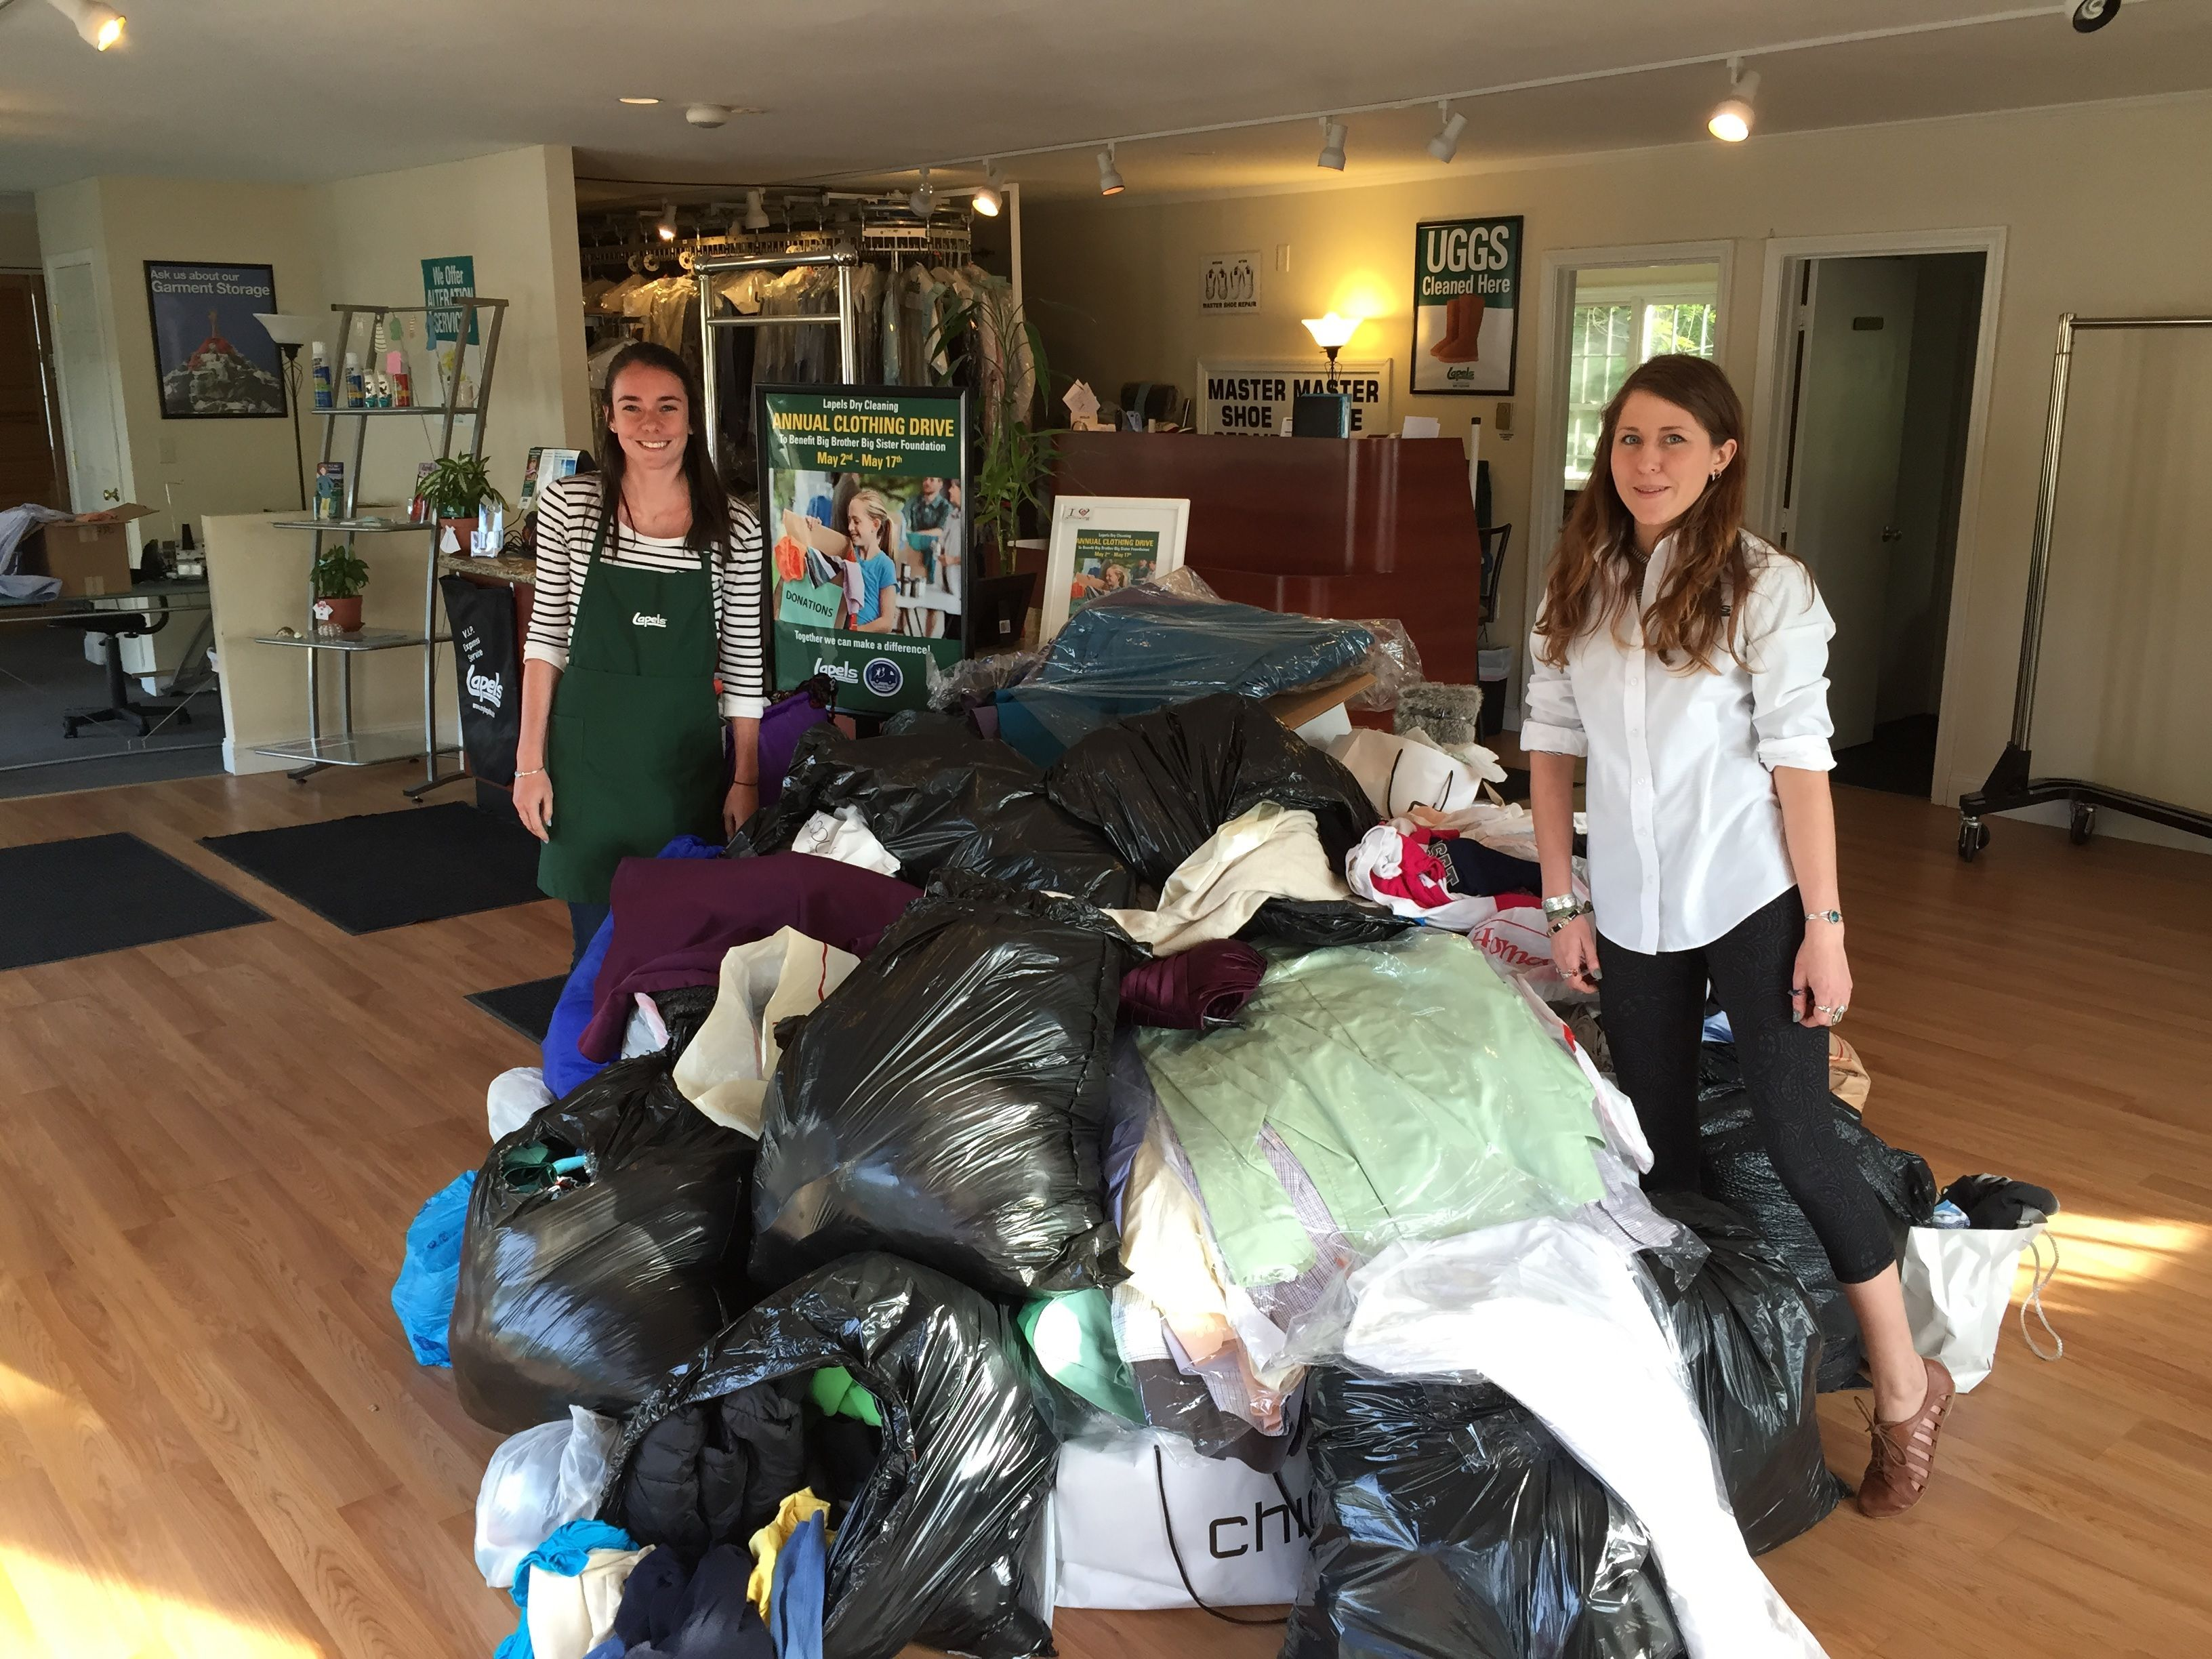 Lapels Dry Cleaning kicks off annual clothing drive to benefit Big Brother/Big Sister on May 7.